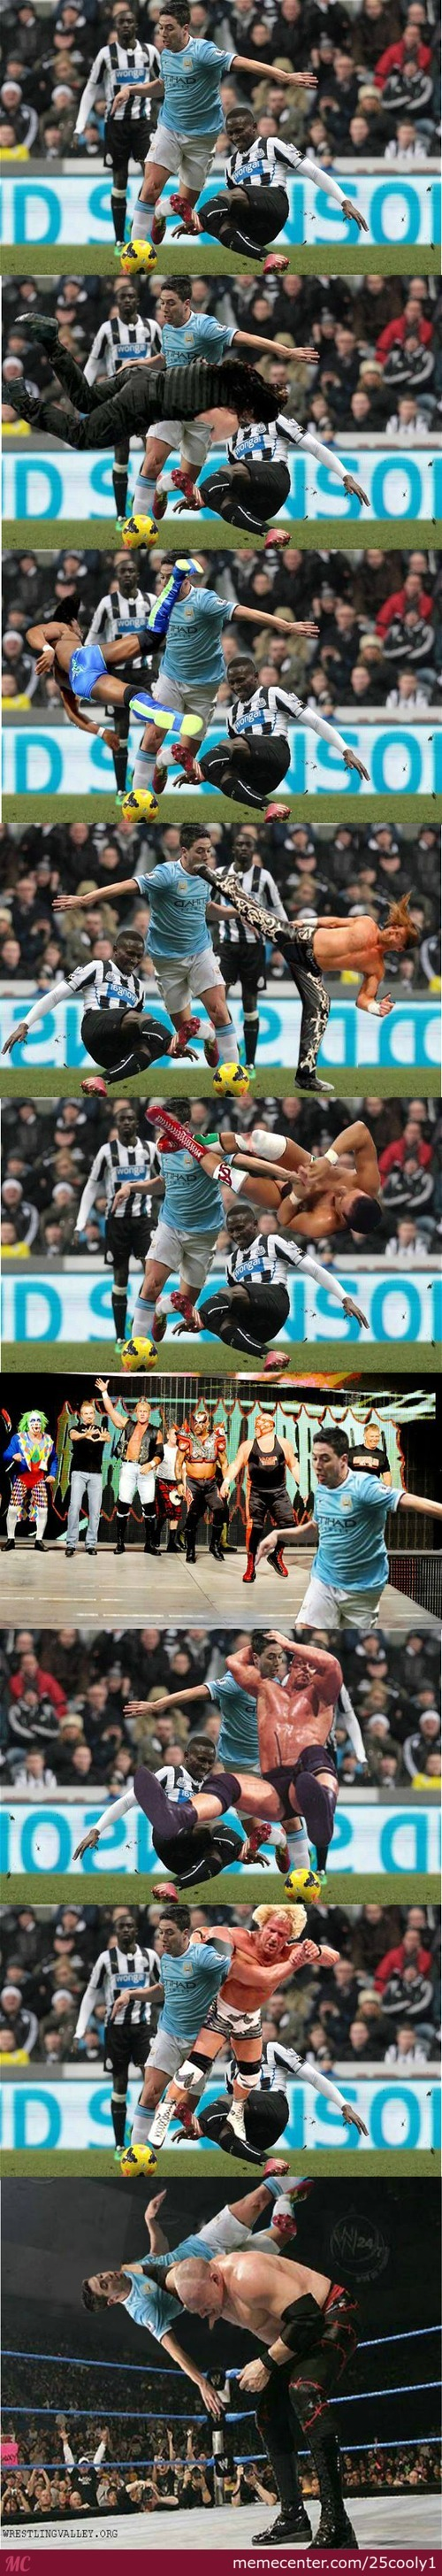 Nasri Getting Attacked By Wrestlers